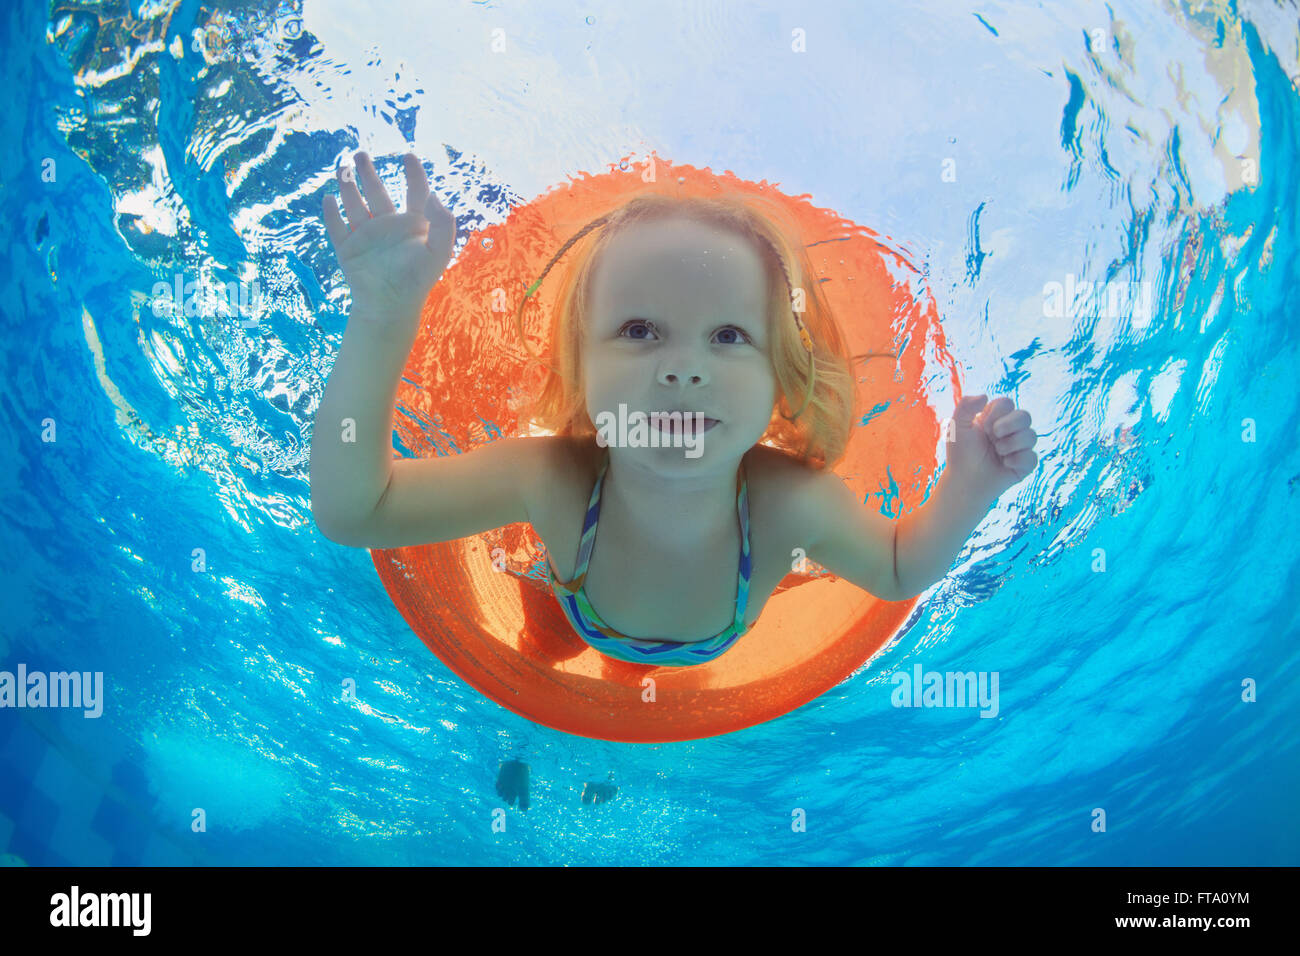 Funny underwater photo of baby girl swimming with fun on orange tube and diving in clear aqua park pool. Stock Photo